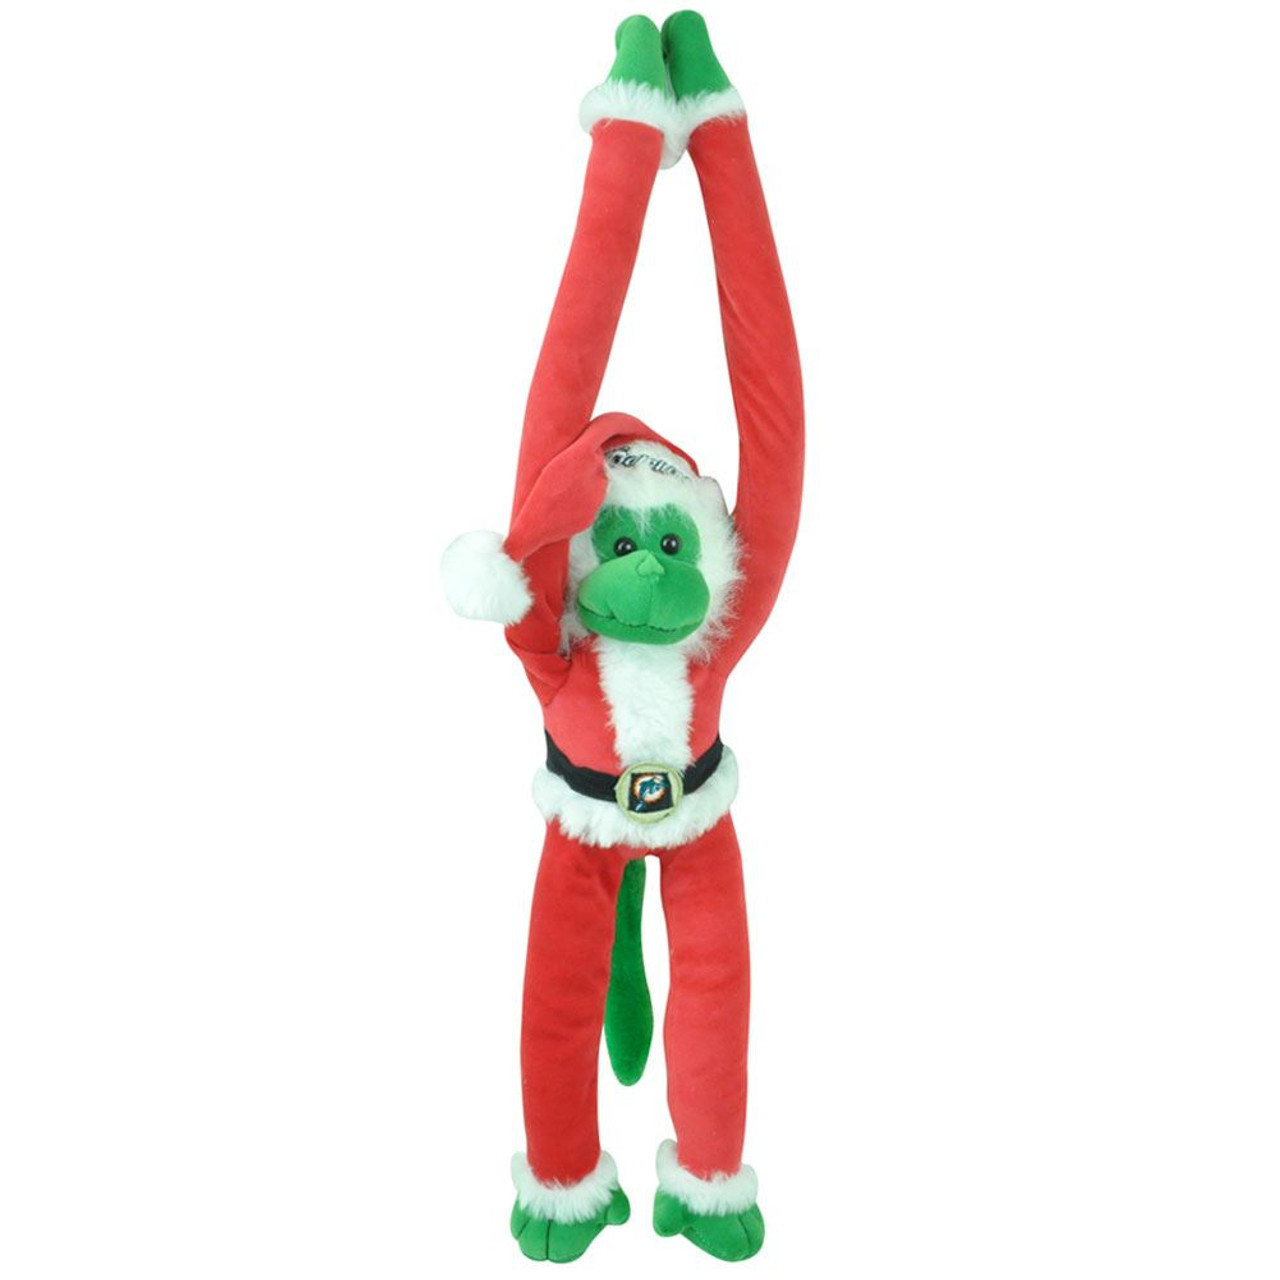 61593fe5a1c49b NFL Miami Dolphins Fins Plush Santa Stuffed Monkey Christmas Football  DN3031 - Sinbad Sports Store